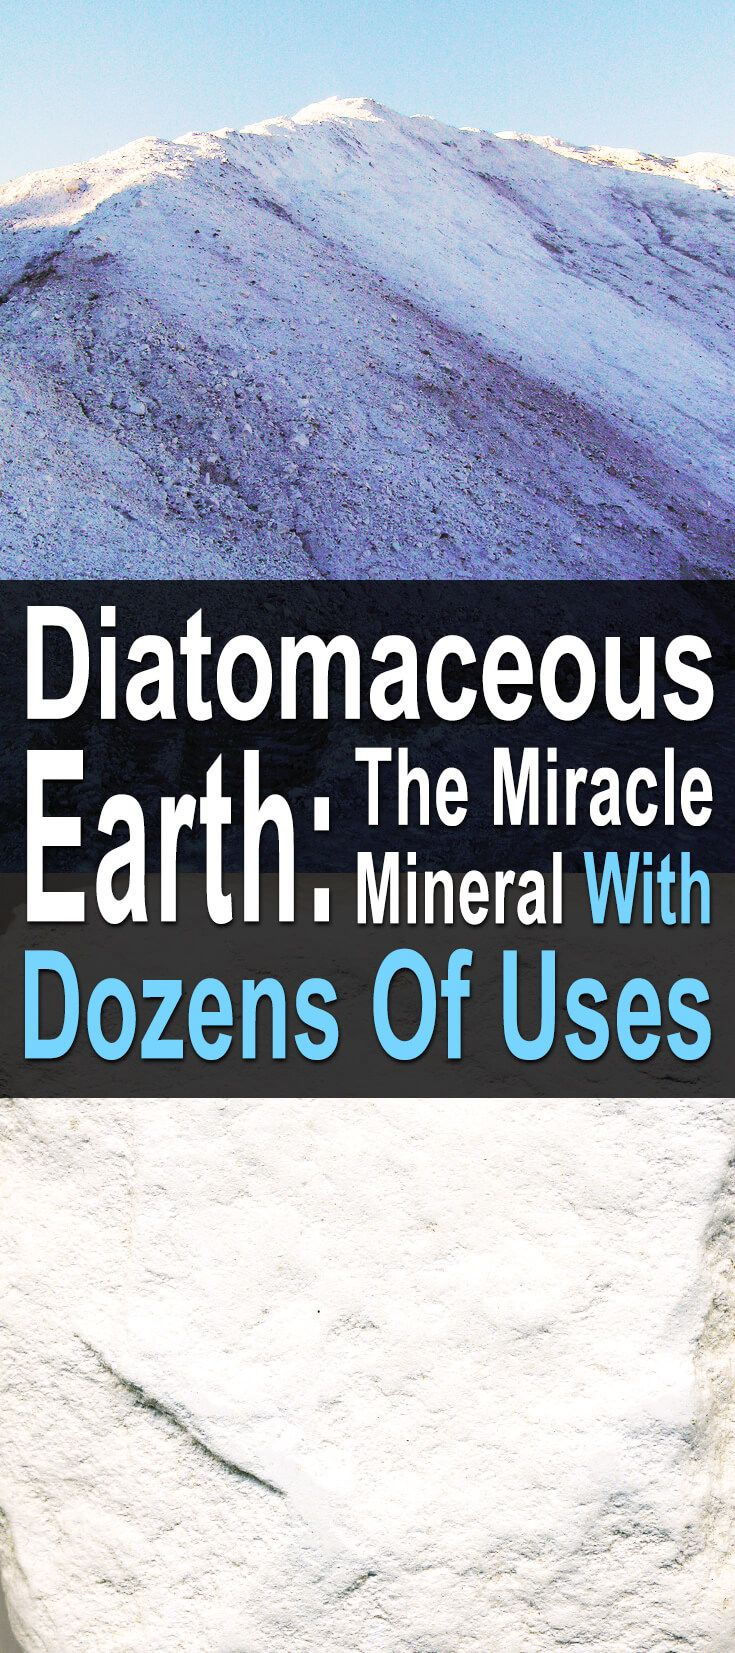 What makes diatomaceous earth such a miracle worker? It's all about its unique and natural chemical makeup. Heavy in silica with calcium, magnesium and other healthy minerals, this powdery sediment is a versatile problem solver, capable of everything from skin care to pest control.